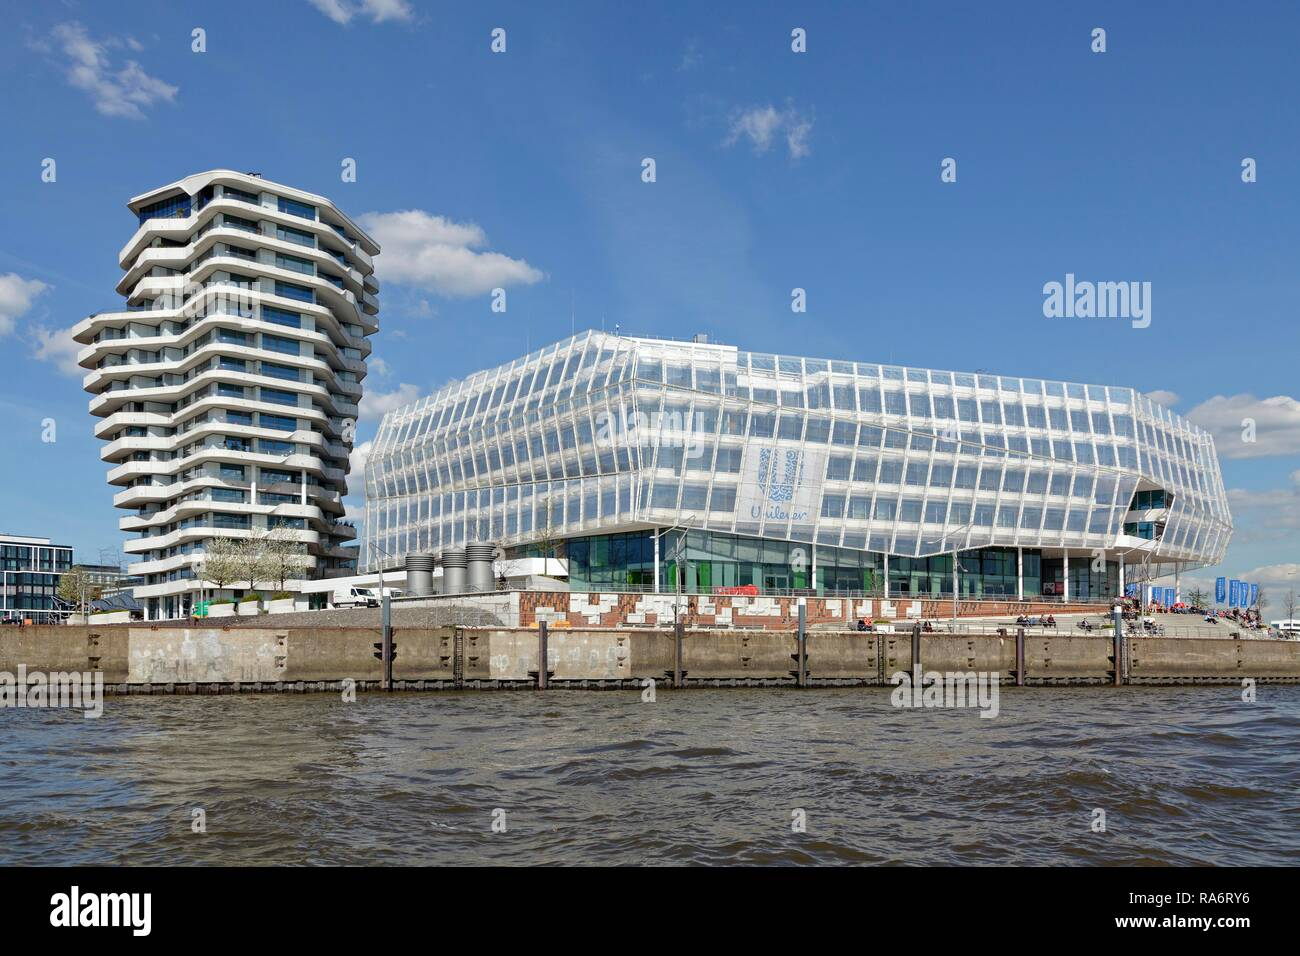 Marco Polo Tower and Unilever Haus, HafenCity, Hamburg, Germany - Stock Image